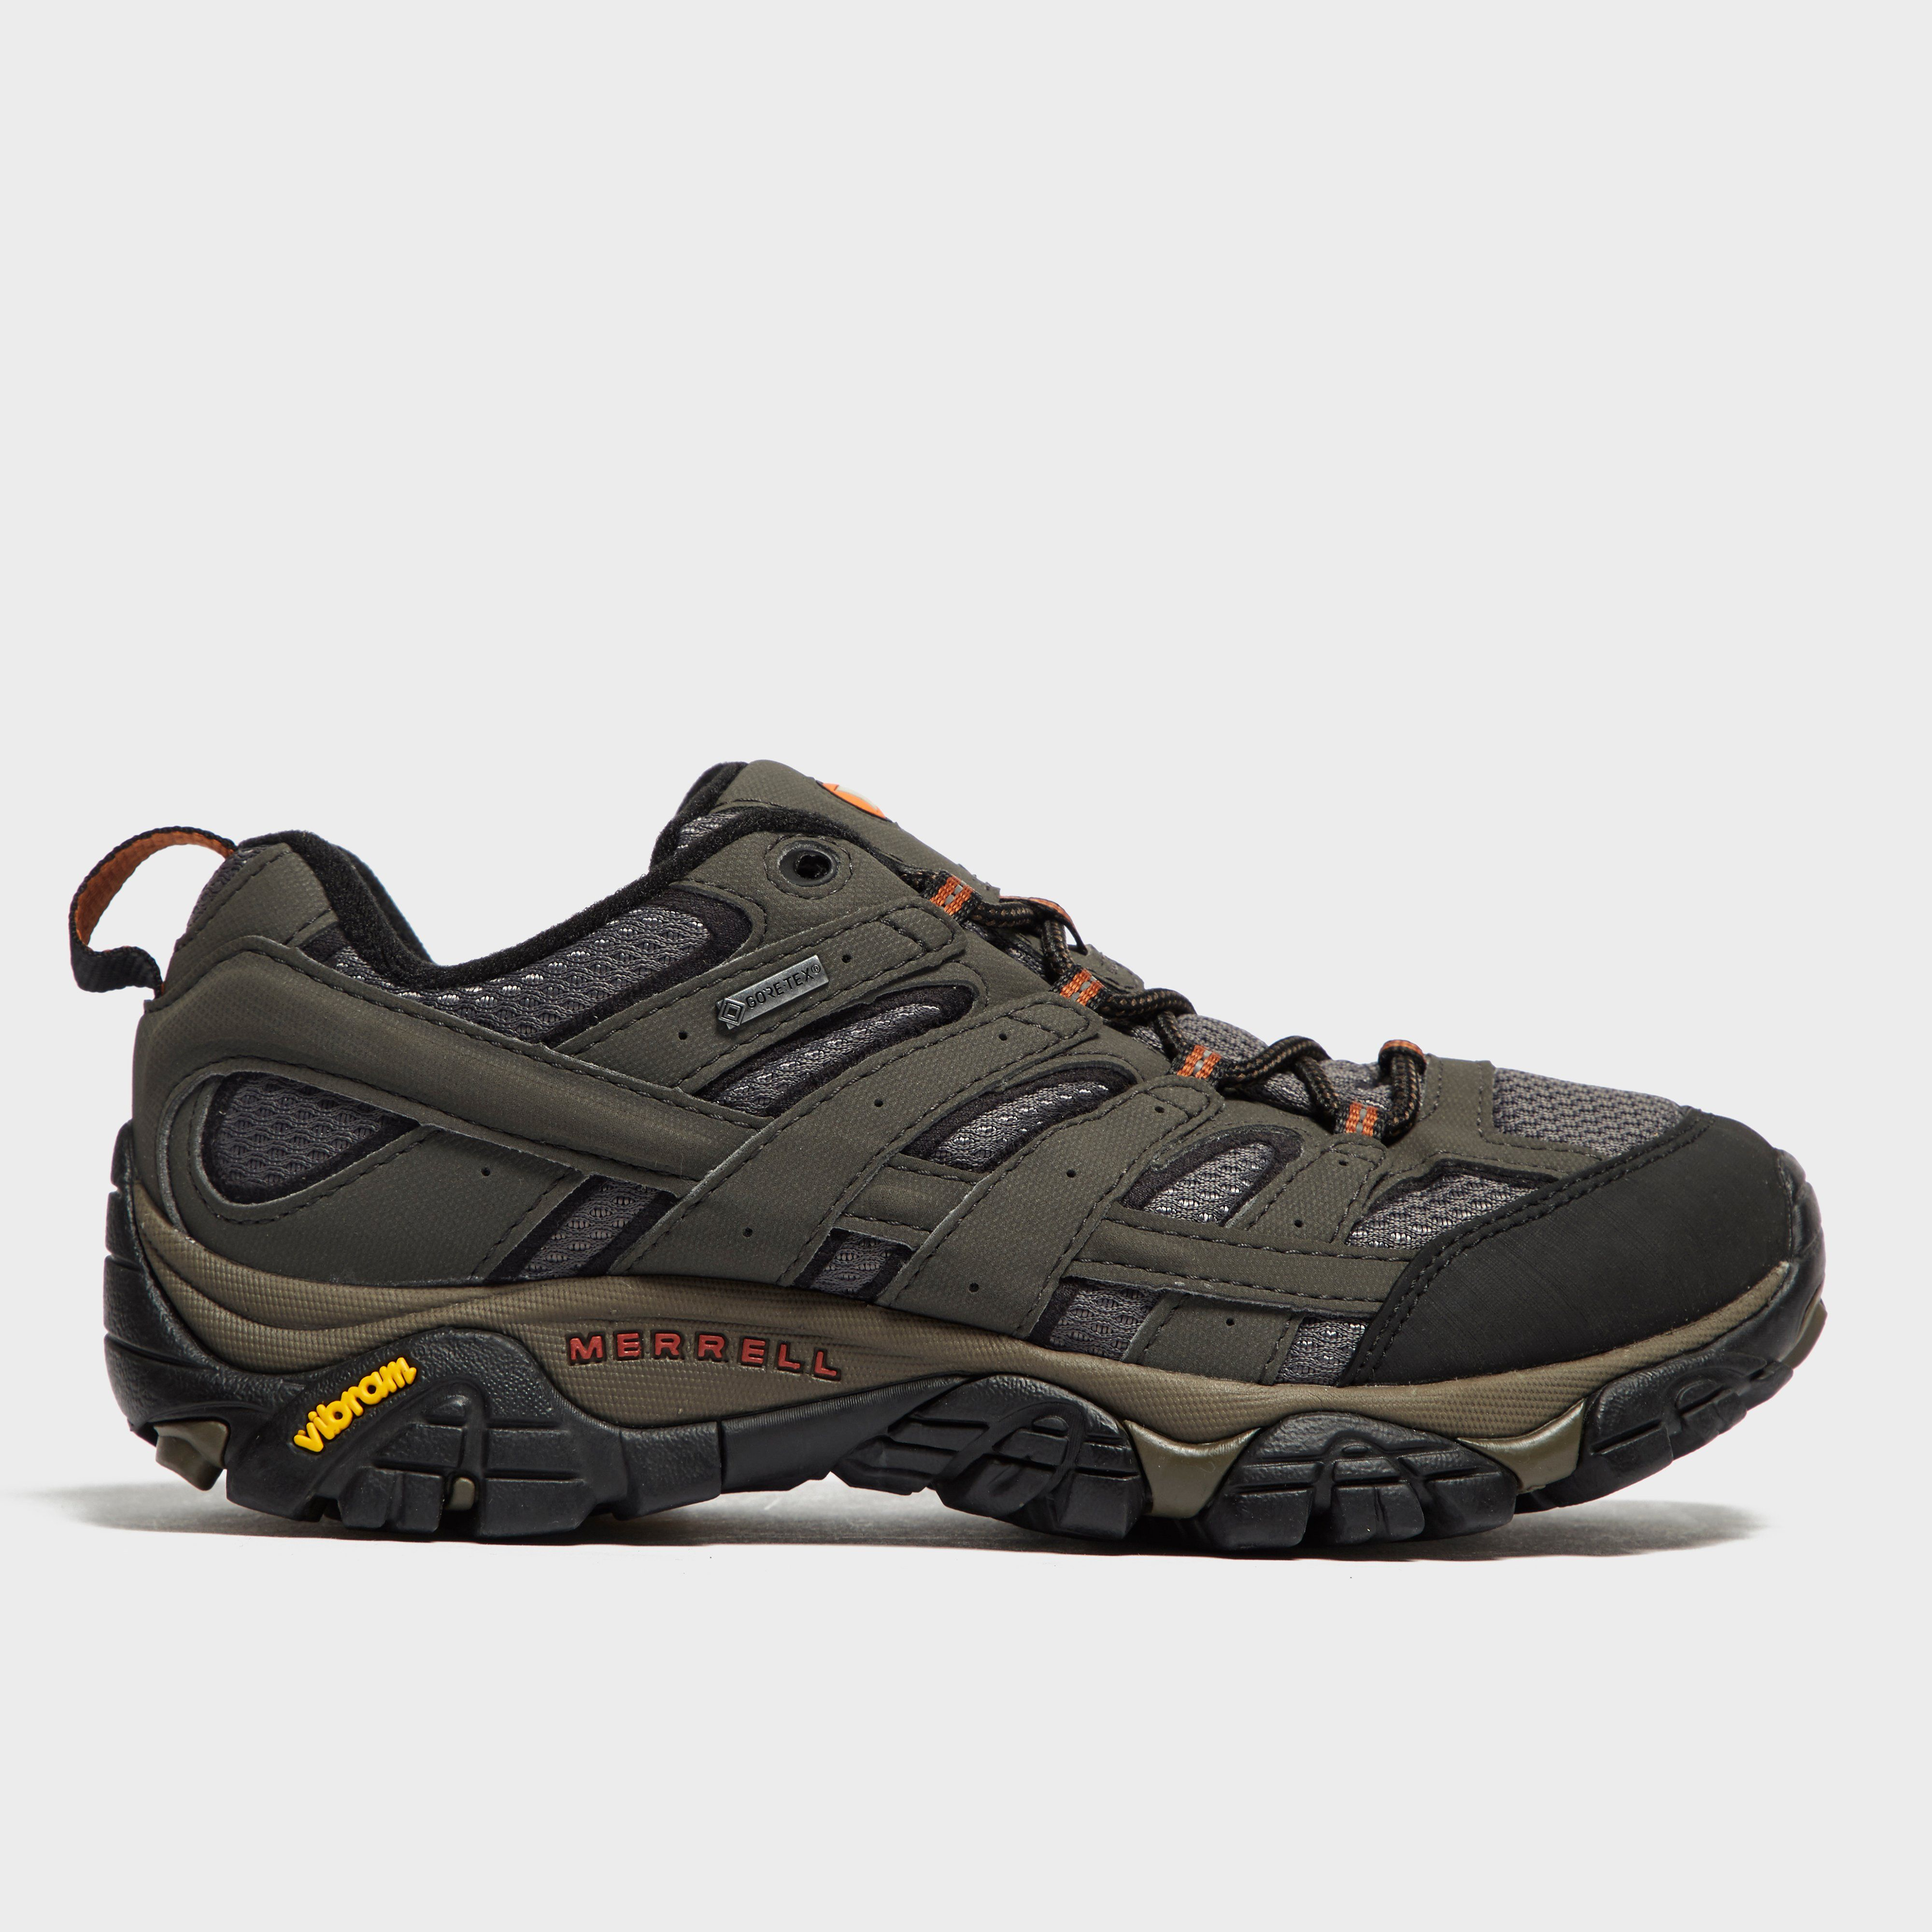 MERRELL Women's Moab 2 GORE-TEX® Hiking Shoes